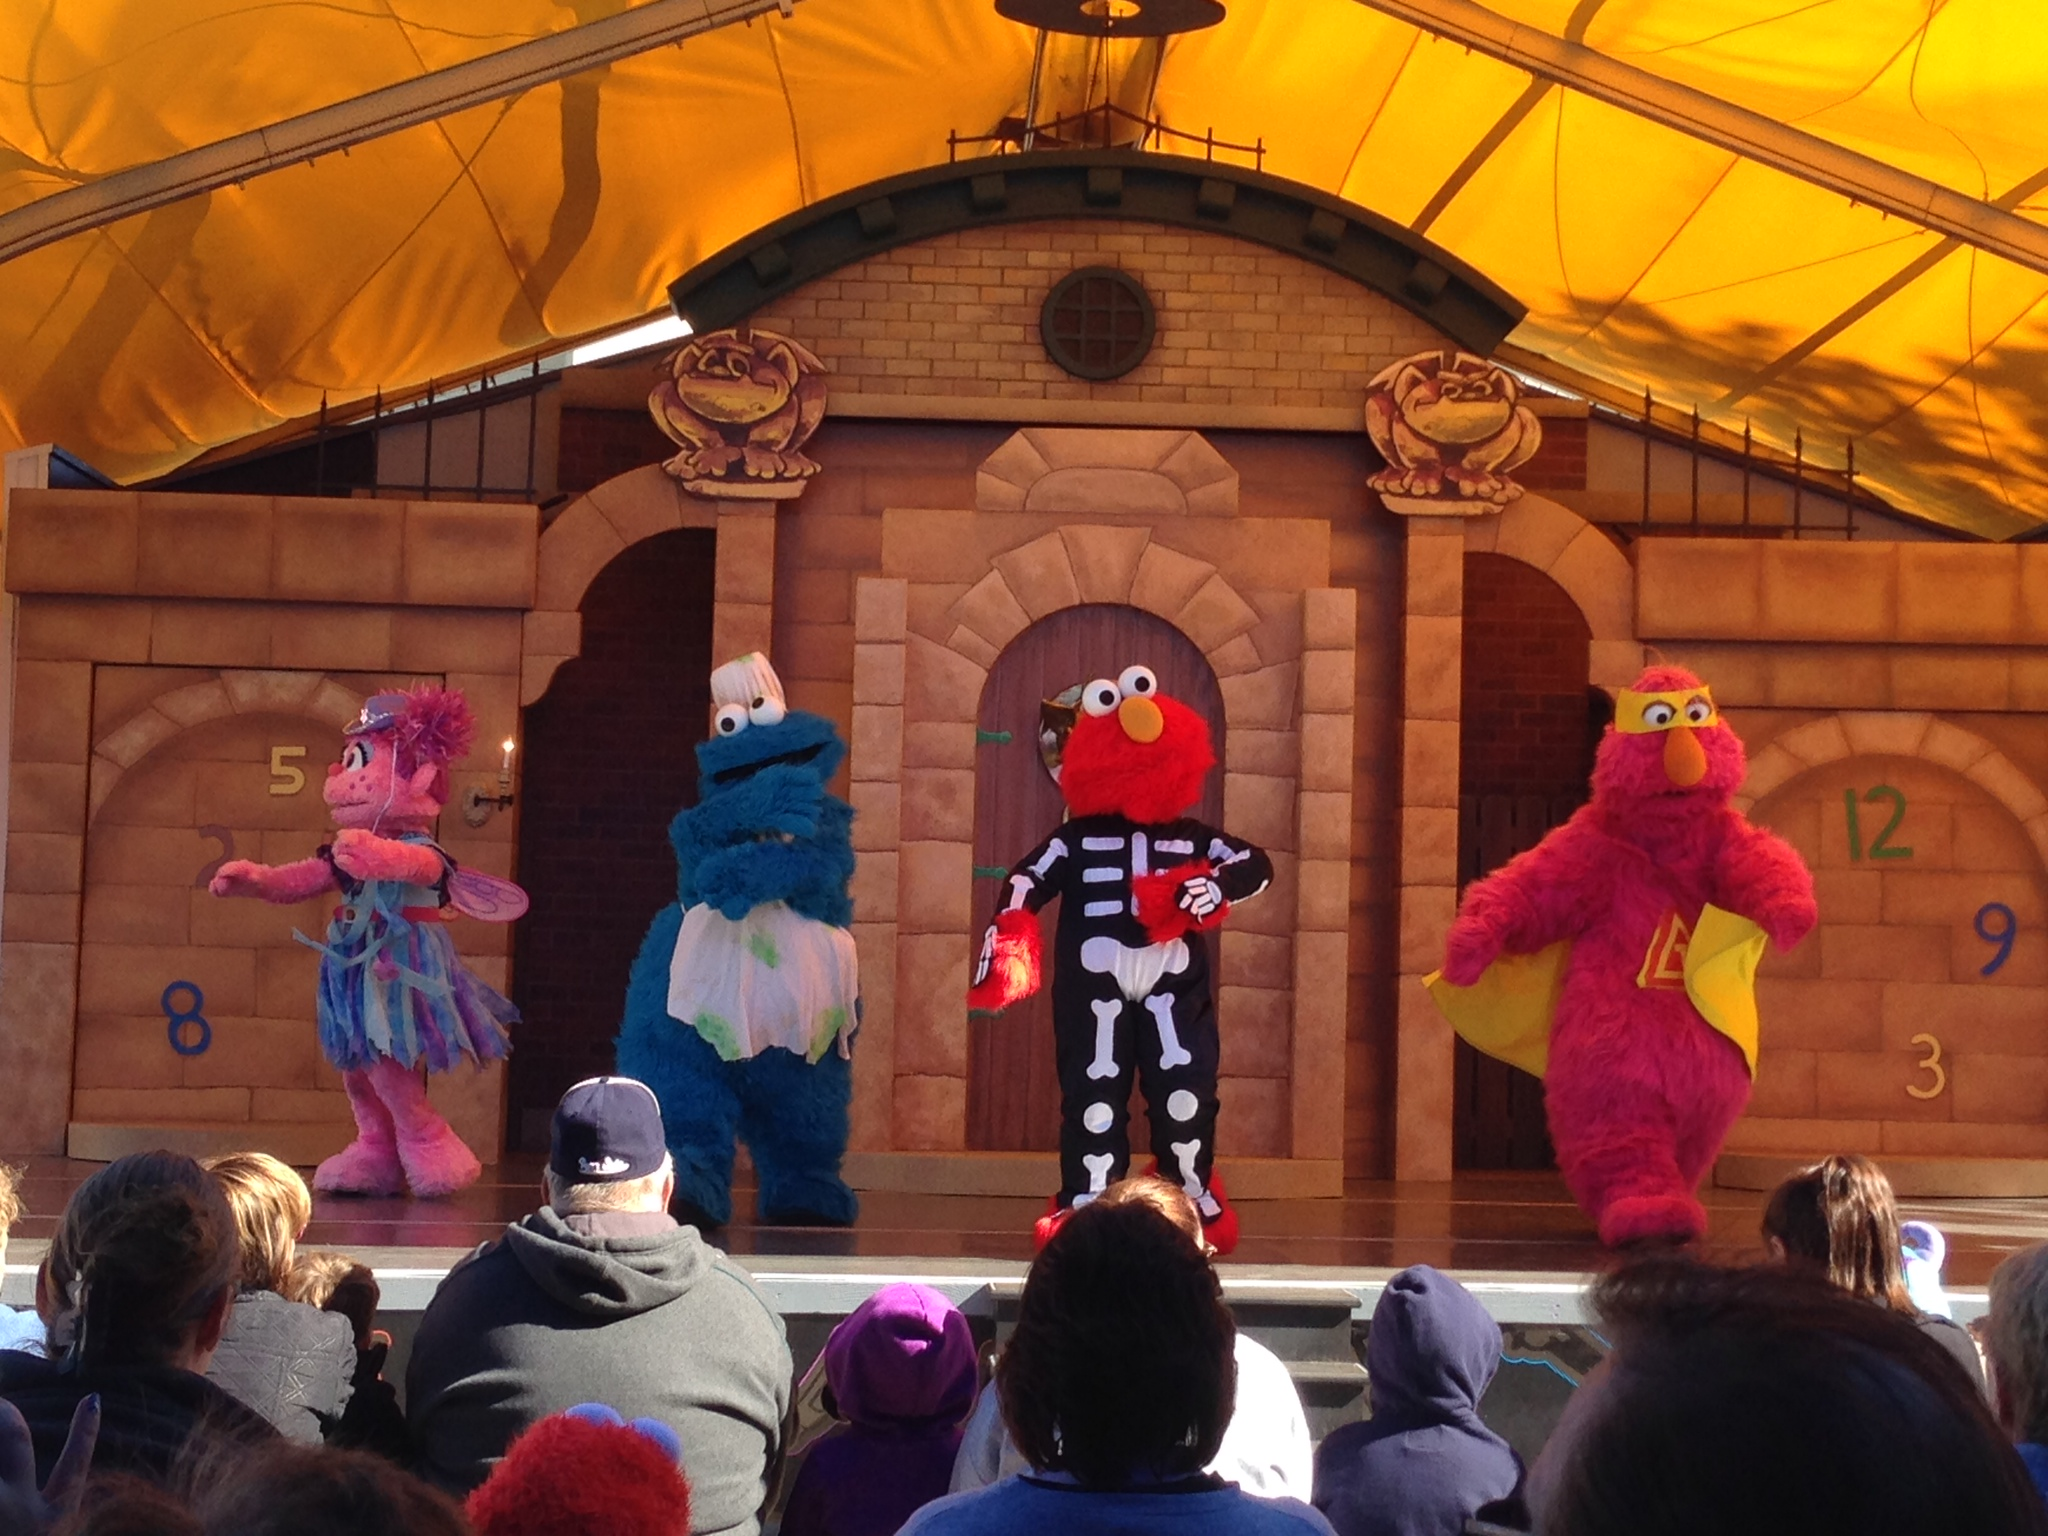 photo oct 19 1 33 26 pm - Sesame Place Halloween